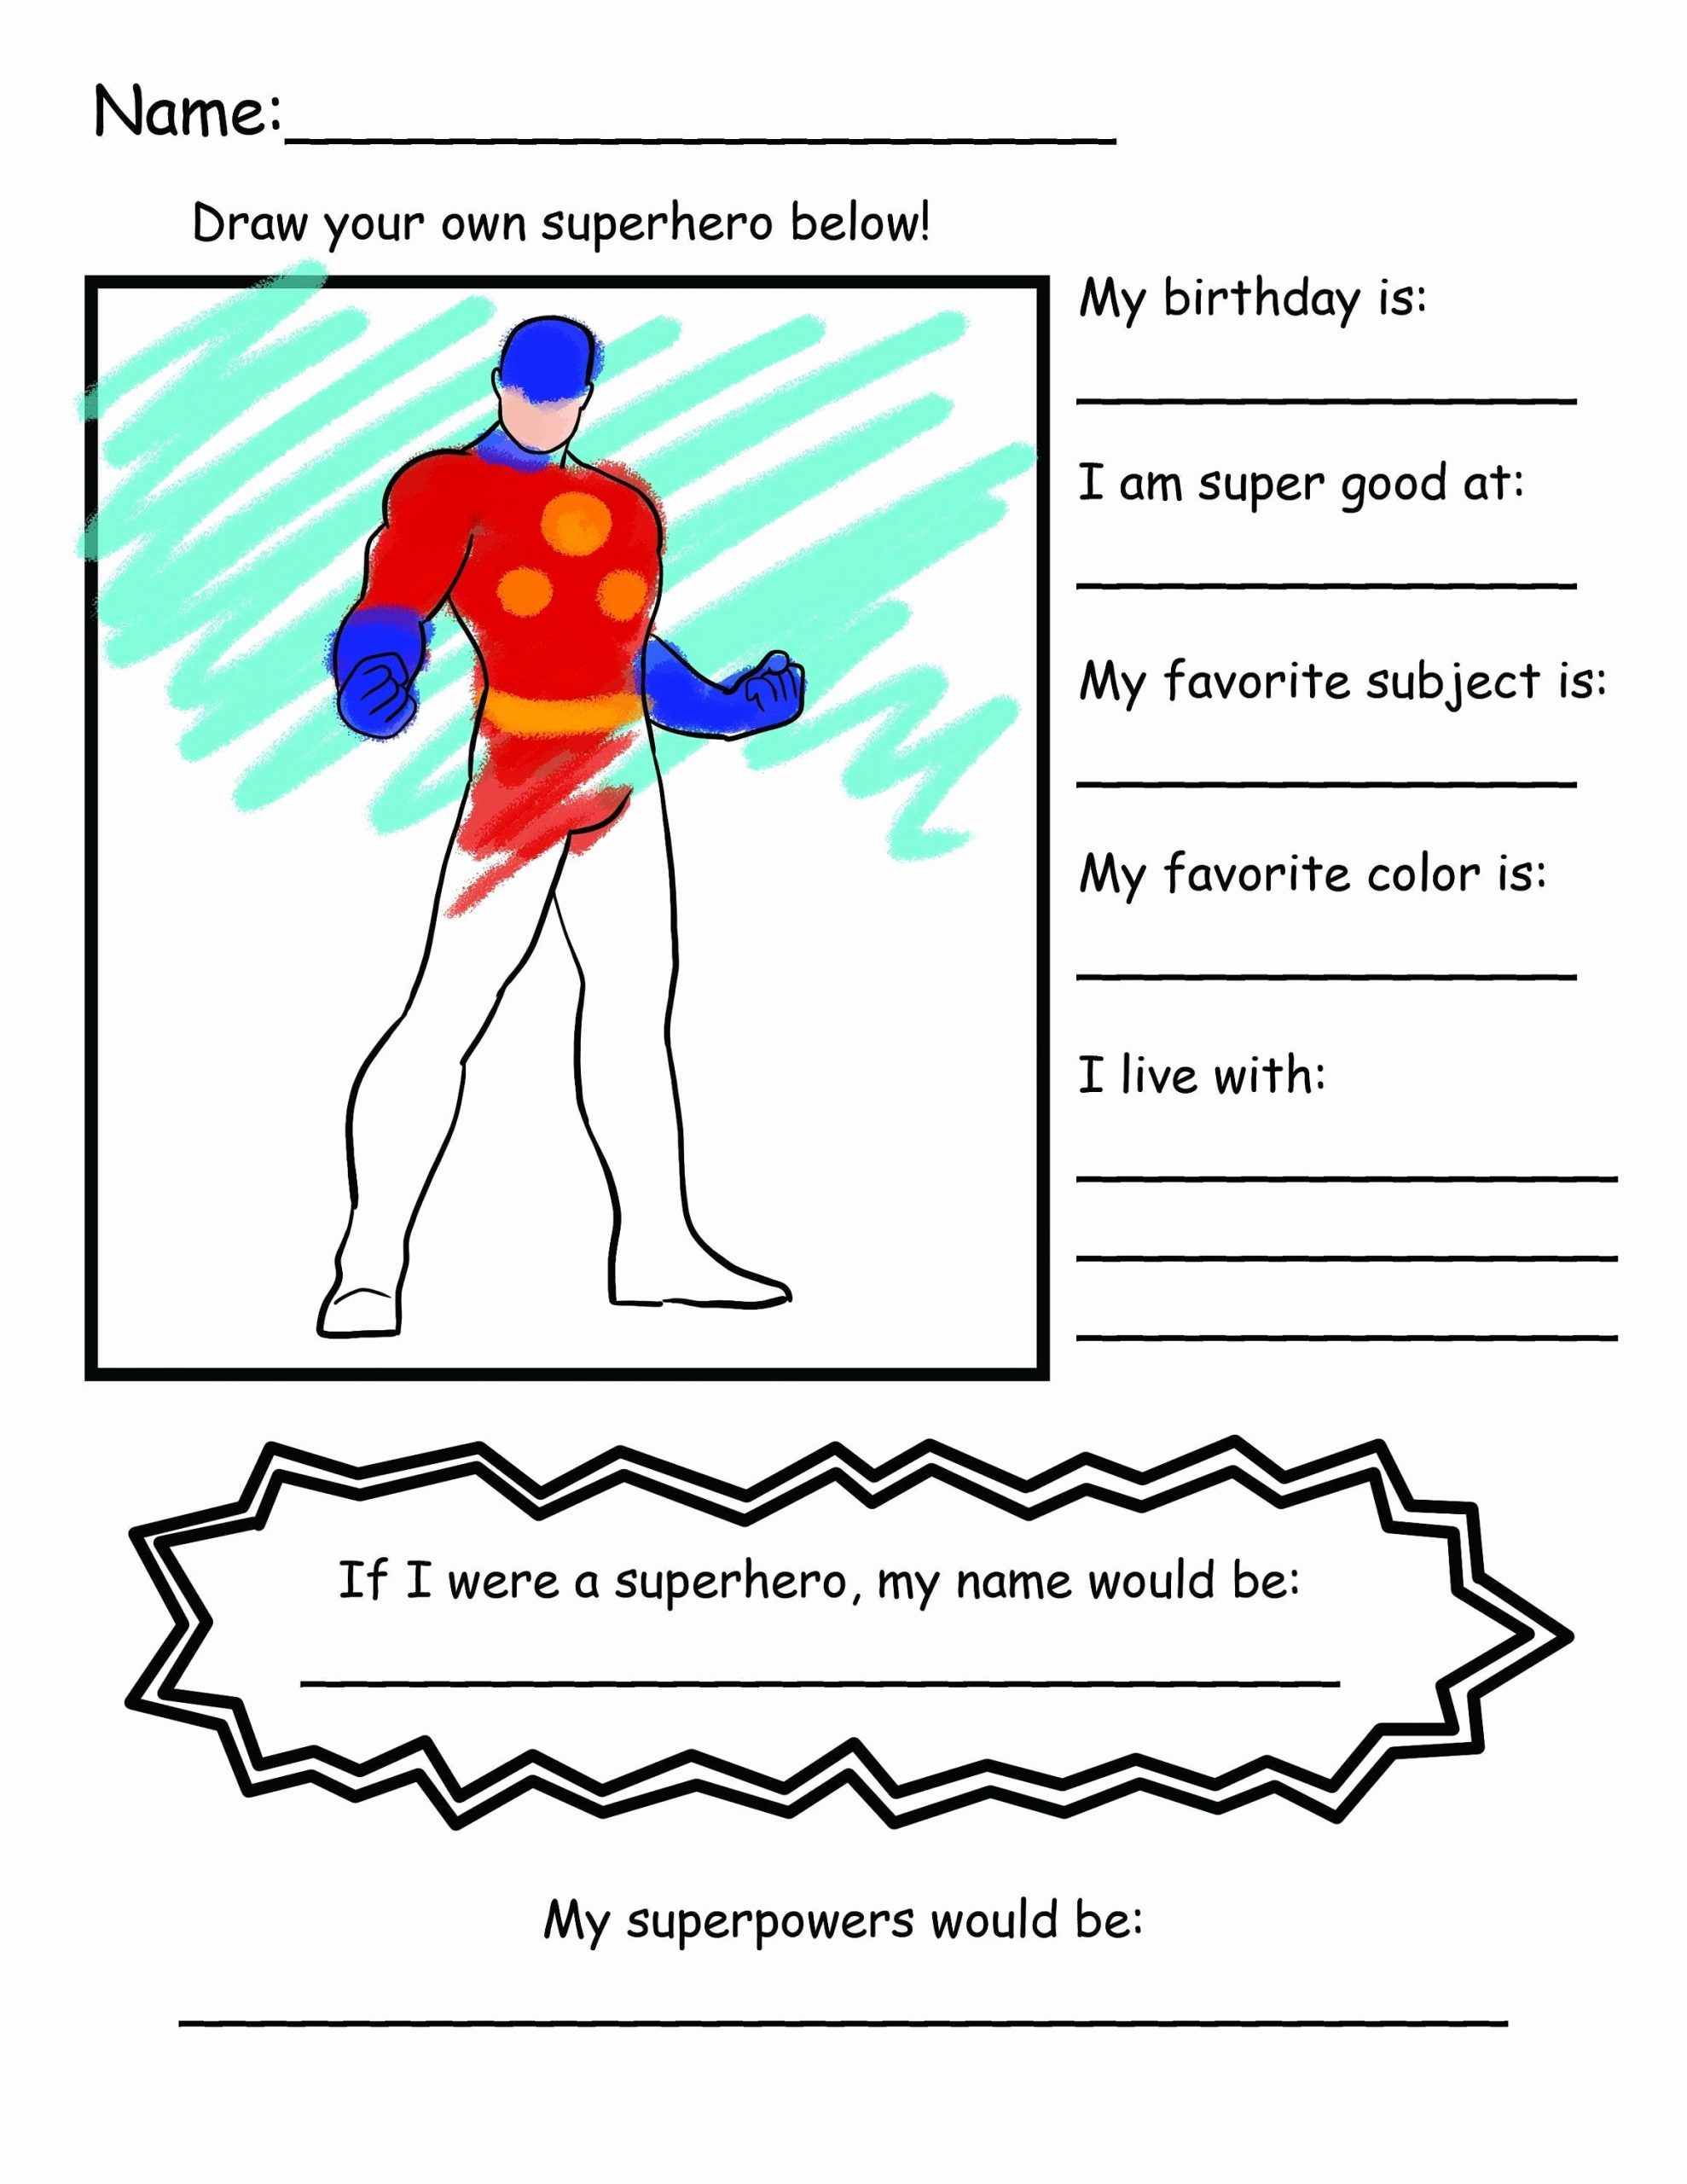 Design Your Own Superhero Worksheet Beautiful Back to School Superhero Get to Know You Coloring